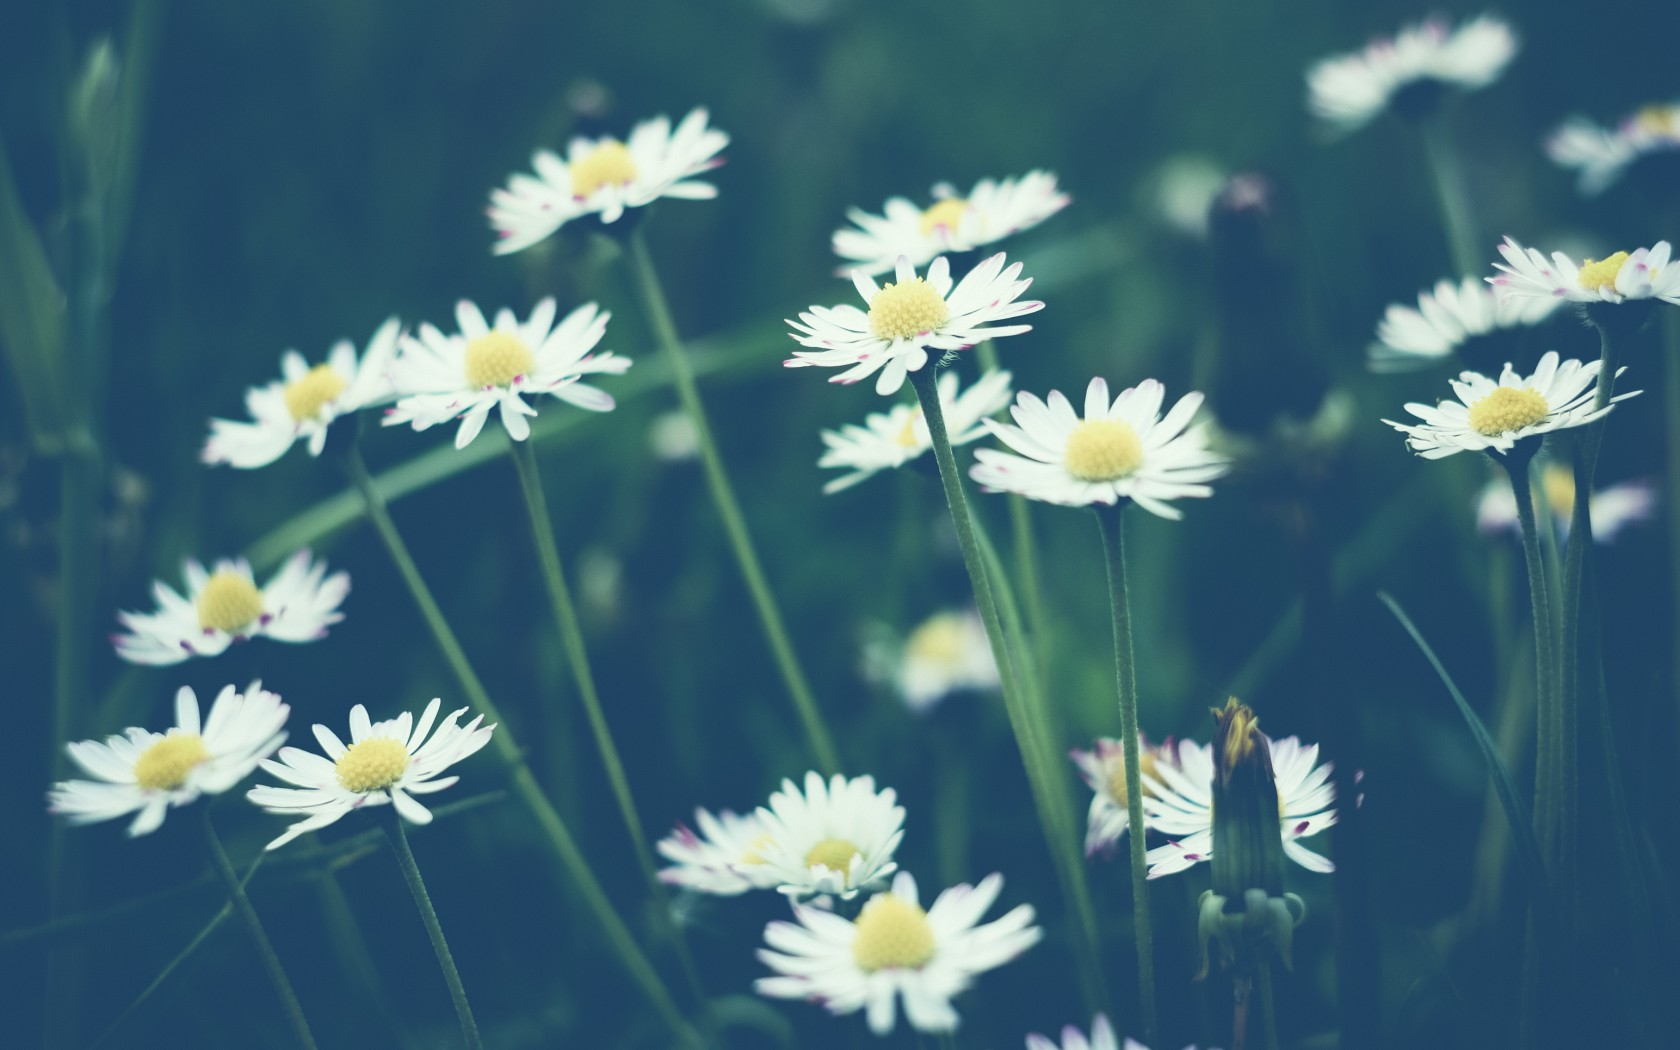 daisy wallpapers hd